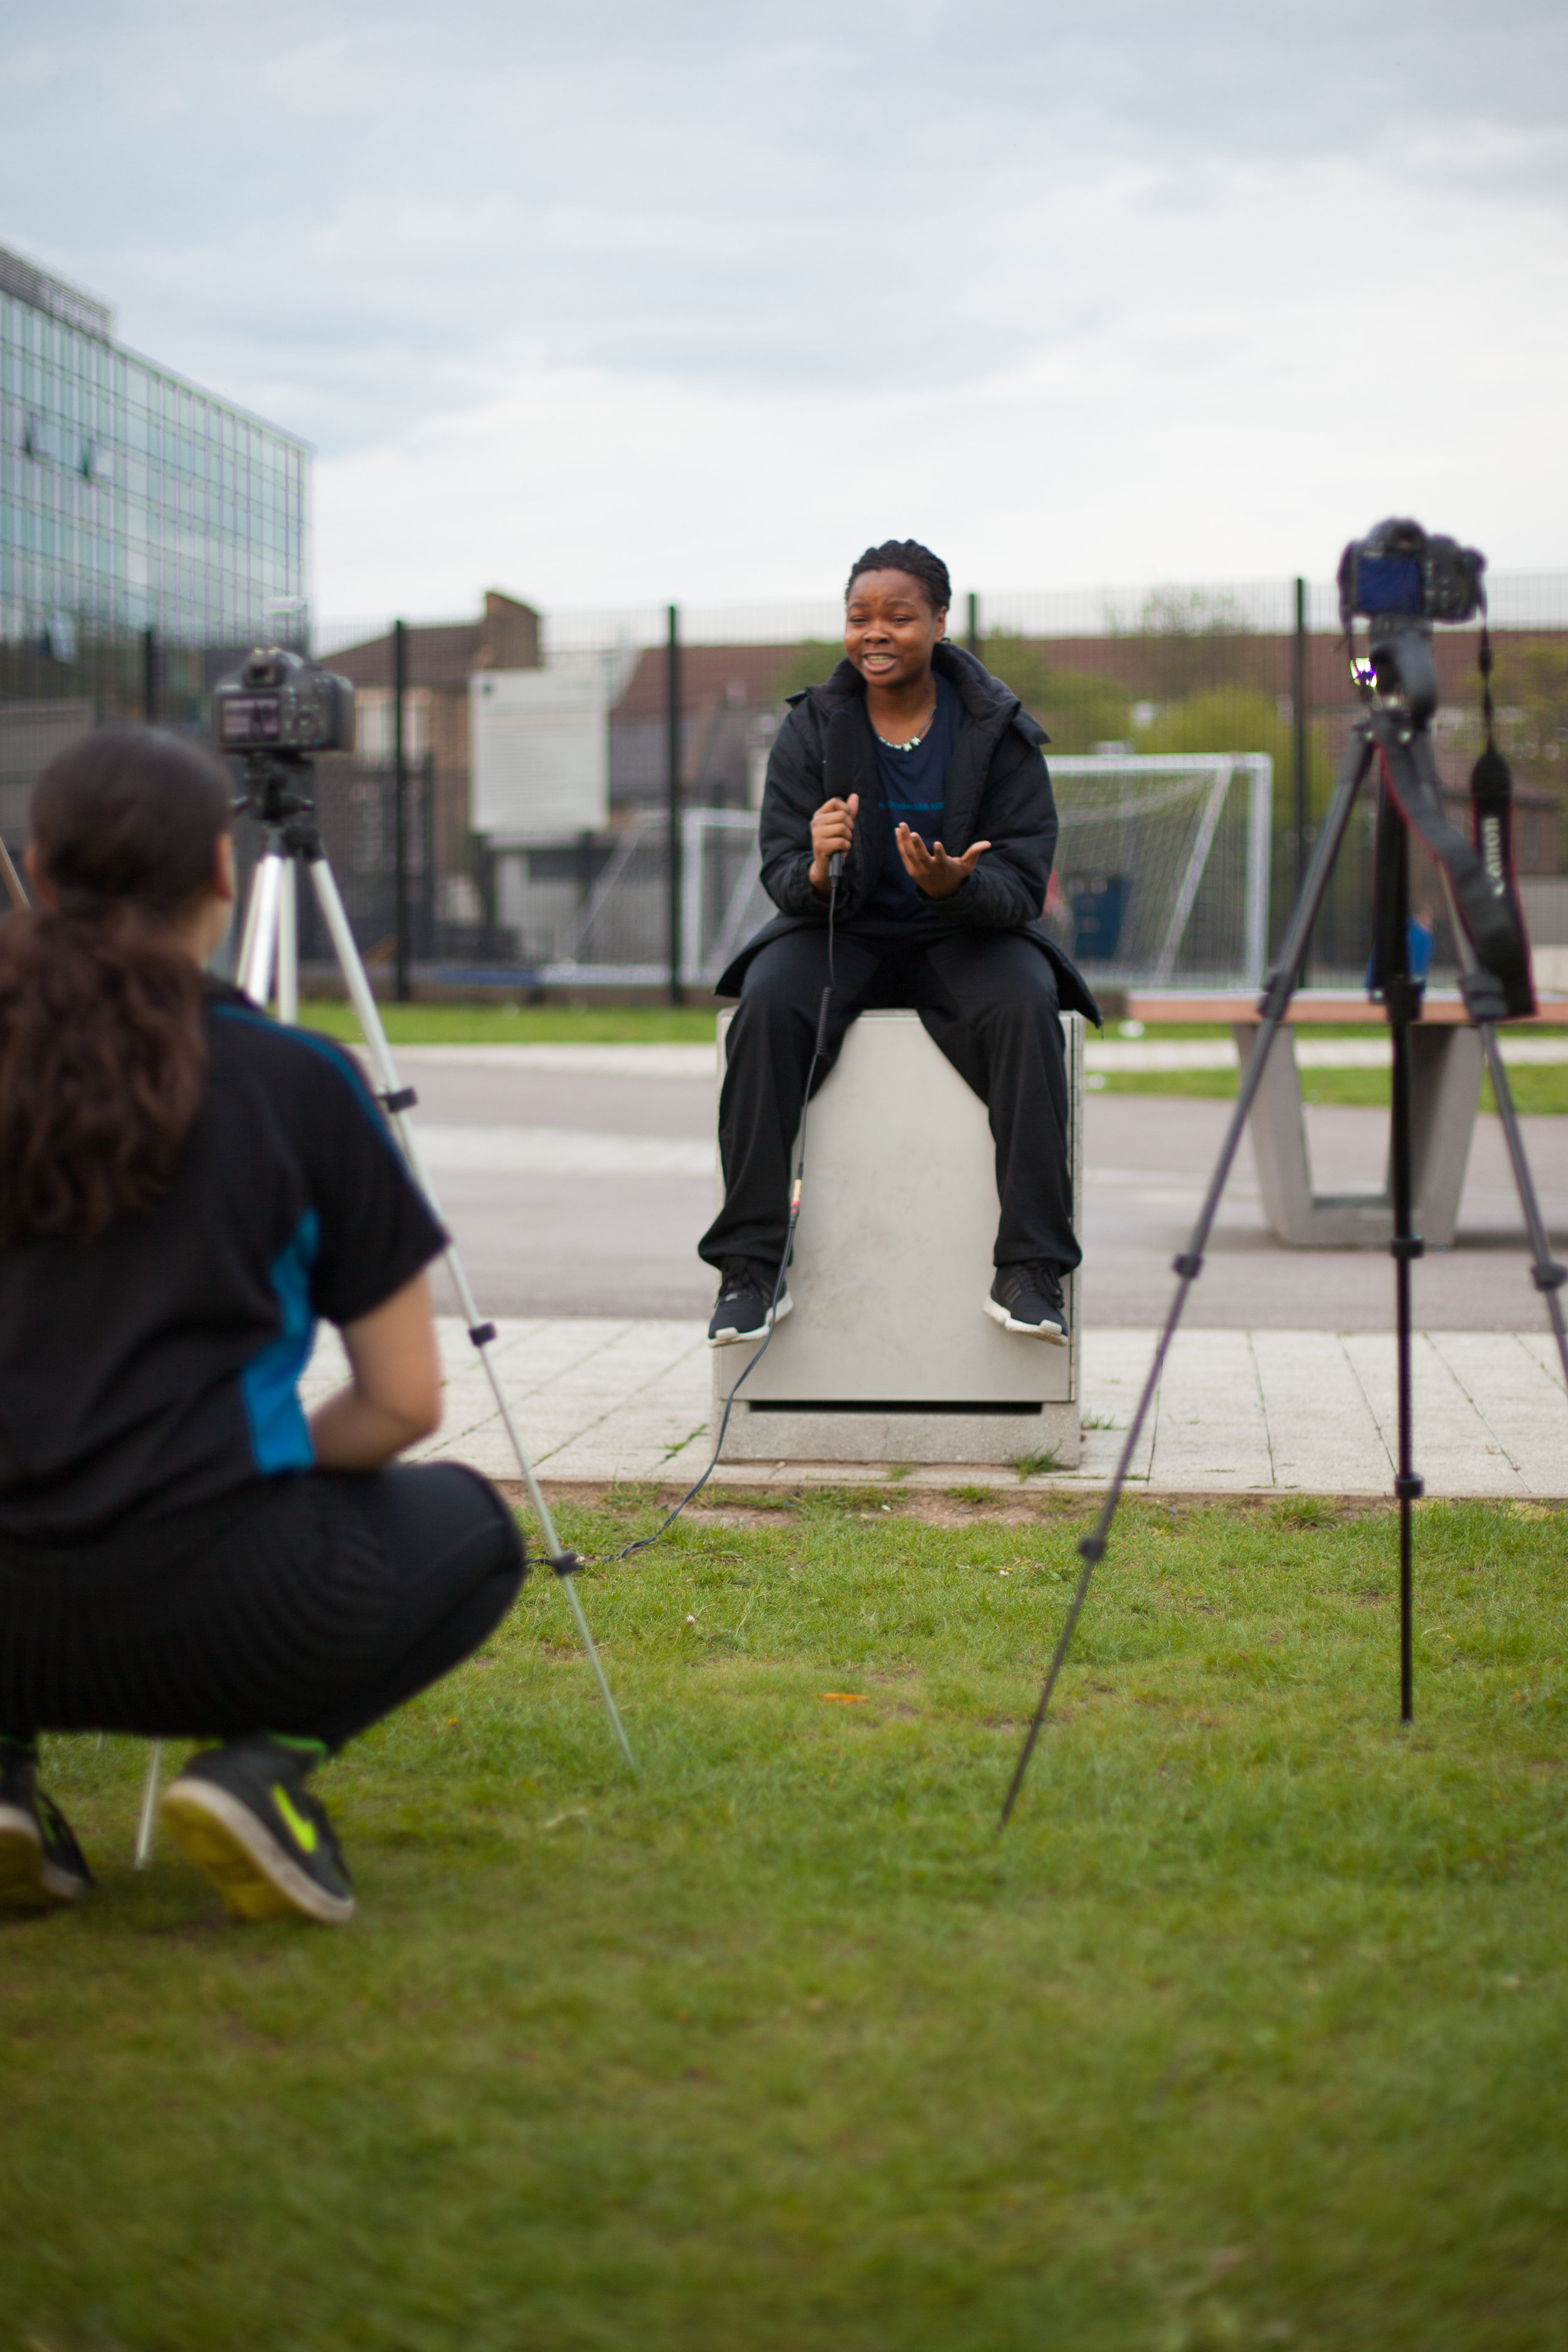 Filming 'This is What a Footballer Looks Like' Documentary with Hackney Laces